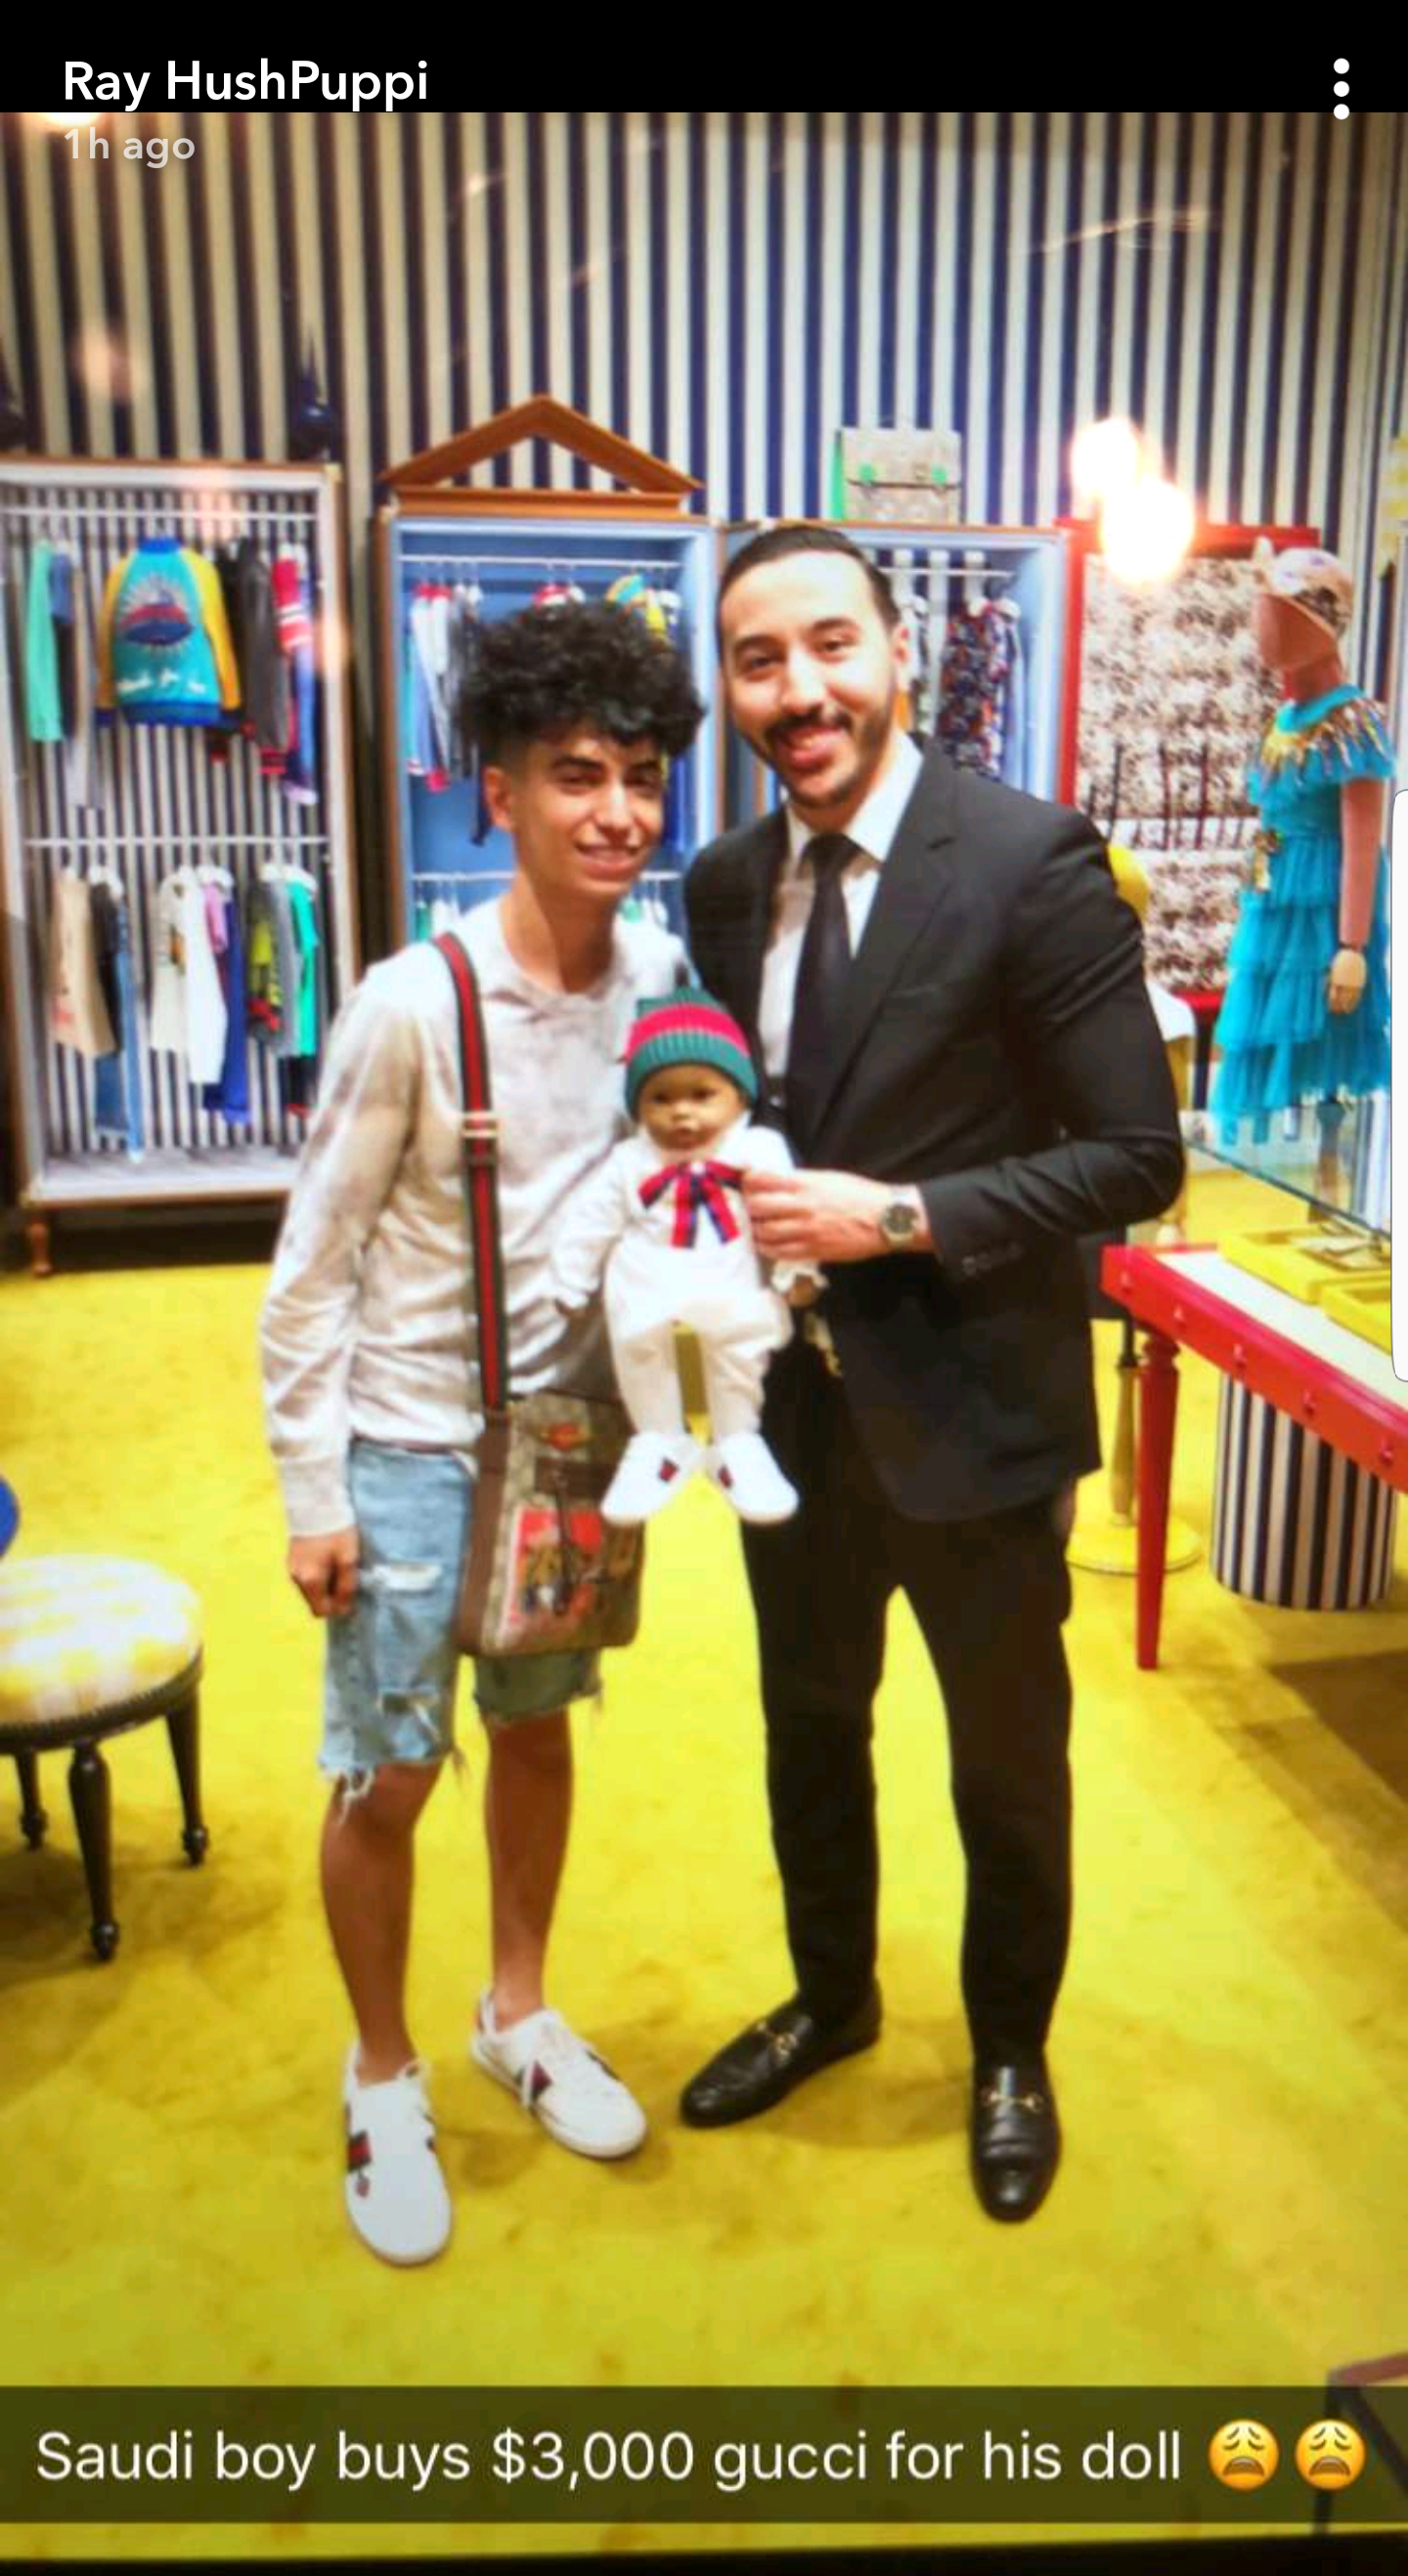 Is he okay?... Saudi Arabian teenager buys $3000 Gucci outfit for his childlike doll